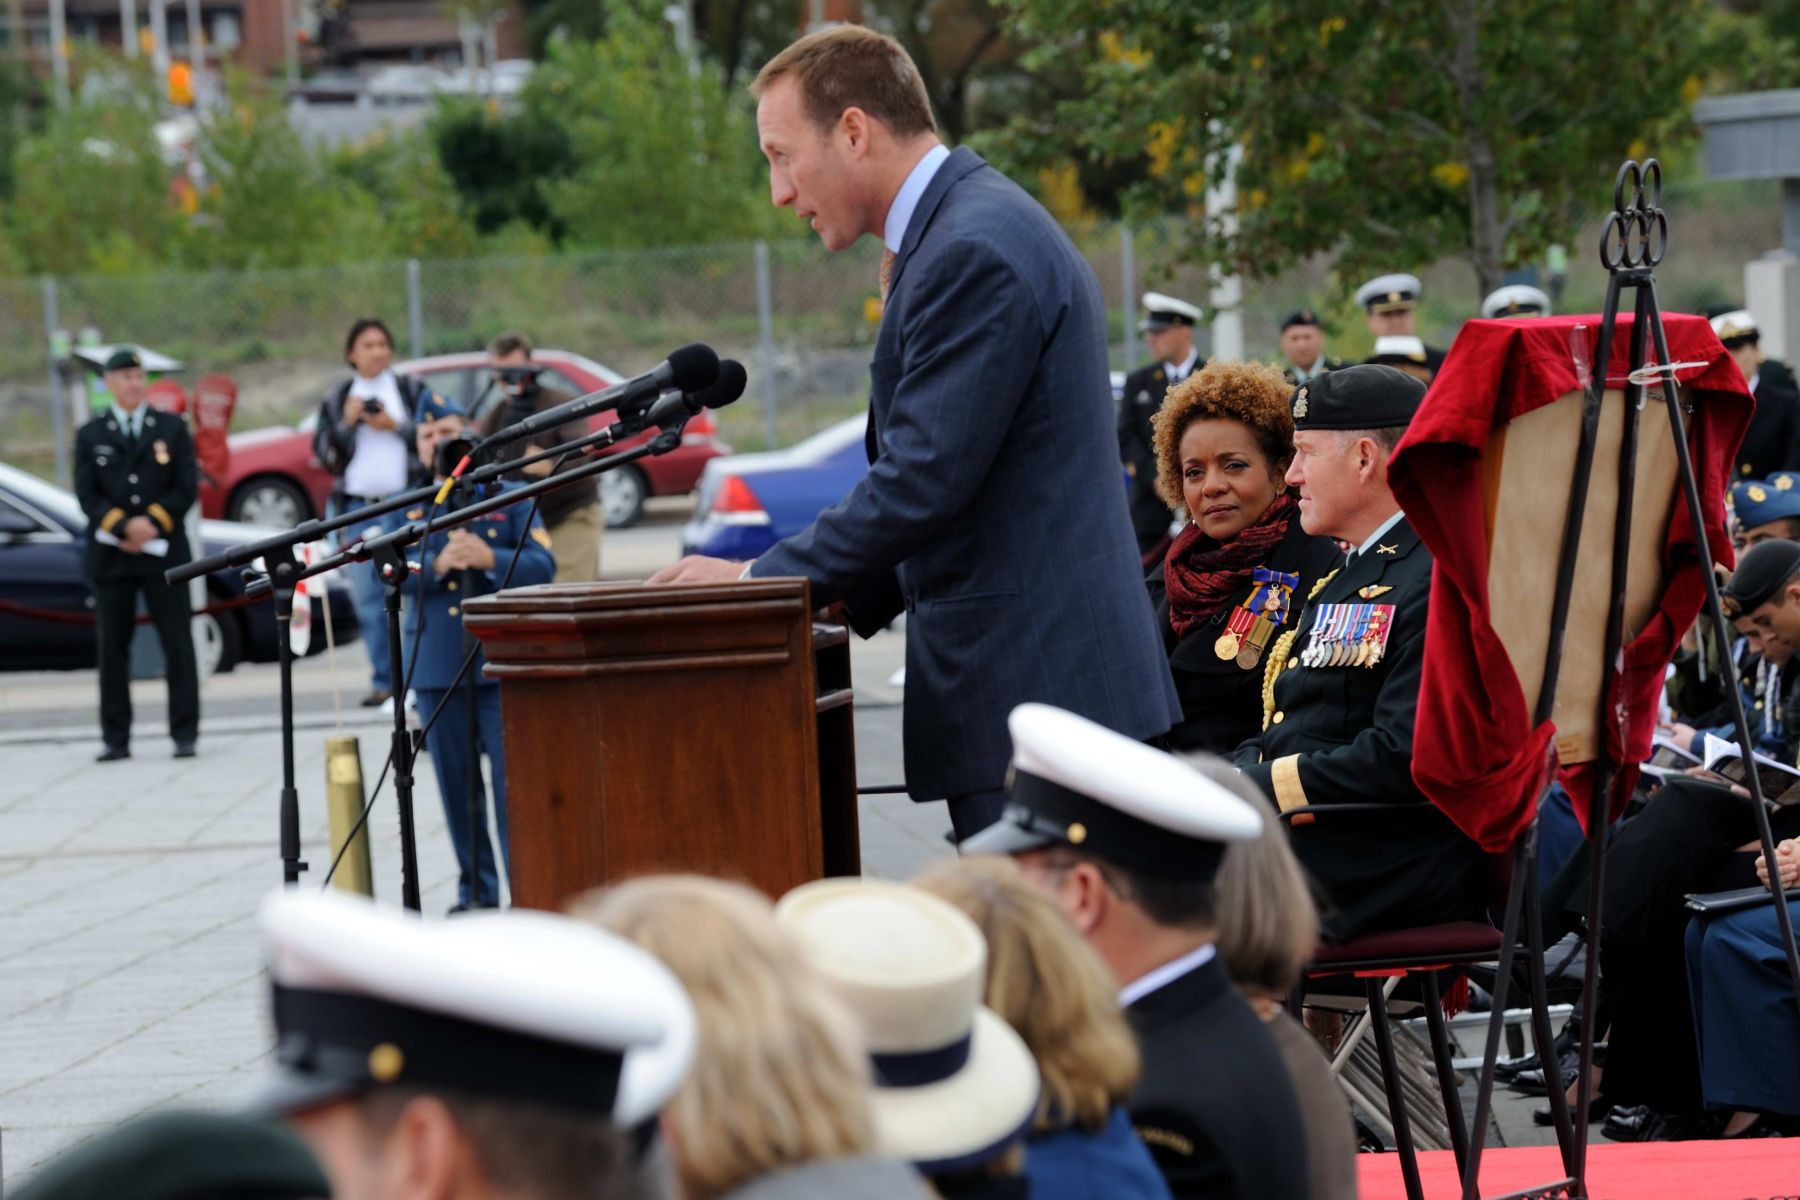 """Her Excellency was instrumental in making sure the men and women of the Canadian Forces knew the level of support and the admiration Canadians had for them,"" said the Minister of National Defence, the Honourable Peter MacKay. ""Her Excellency reminded us all of the very difficult and often dangerous work the Canadian Forces do at home and around the world on our behalf."""